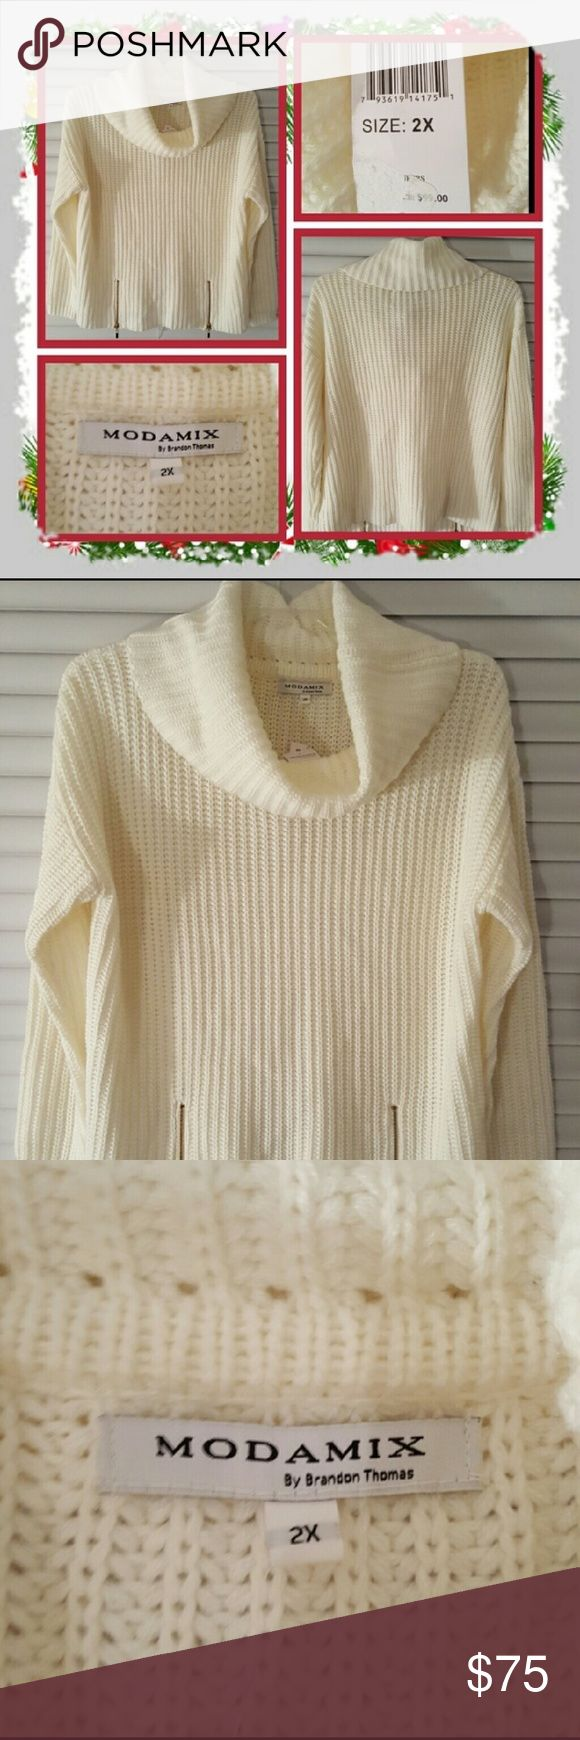 "❤ NWT Woman's Cowl Neck Sweater Size 2X ❤ Brand New Woman's White Cowl Neck Sweater Size 2X. This Sweater Has A Cowl Neck And Zipper Design On The Front Each Side. I Would Say This Is Approximately 25"" Inches Long It Fits Small More Like A 1X Or Smaller In My Opinion Great For Fall And Winter 🚫 PAYPAL 🚫 TRADES 🚫 OFFERS PRICE IS FIRM ❤ Modamix Sweaters Cowl & Turtlenecks"